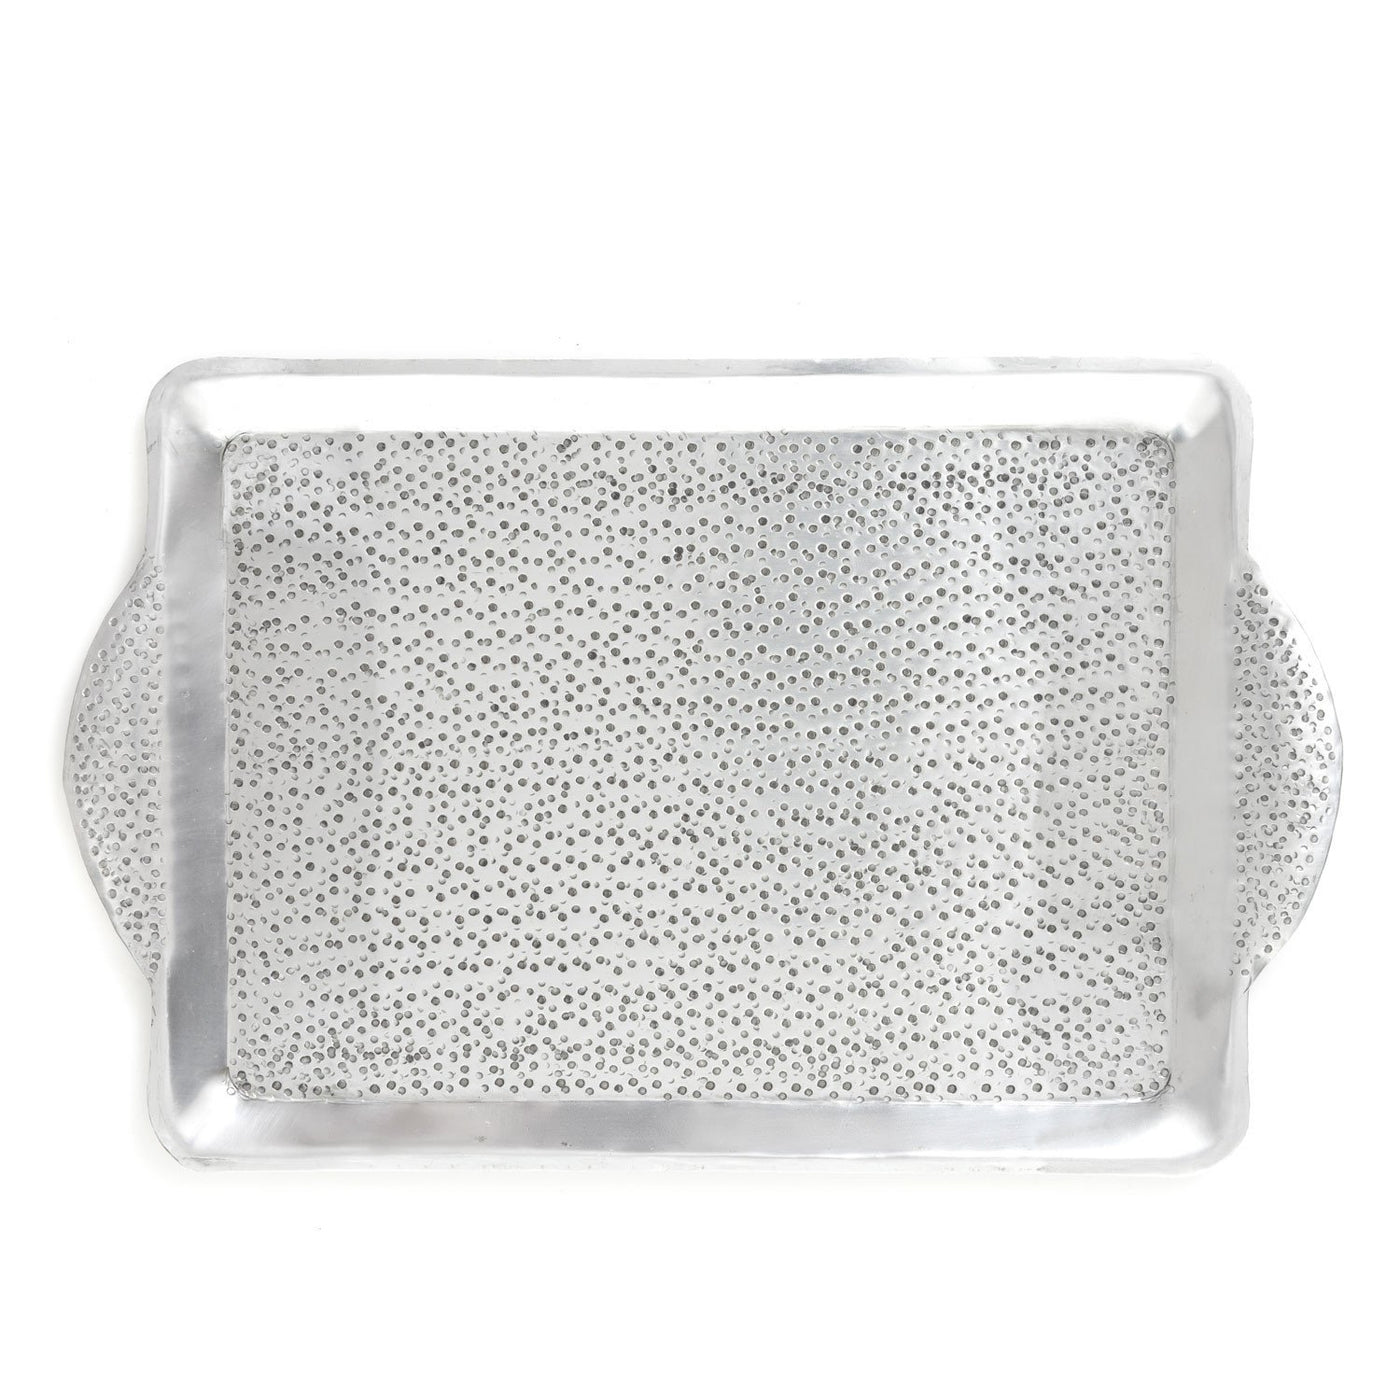 Rectangular Silver Aluminium Serving Tray - 30x47cm